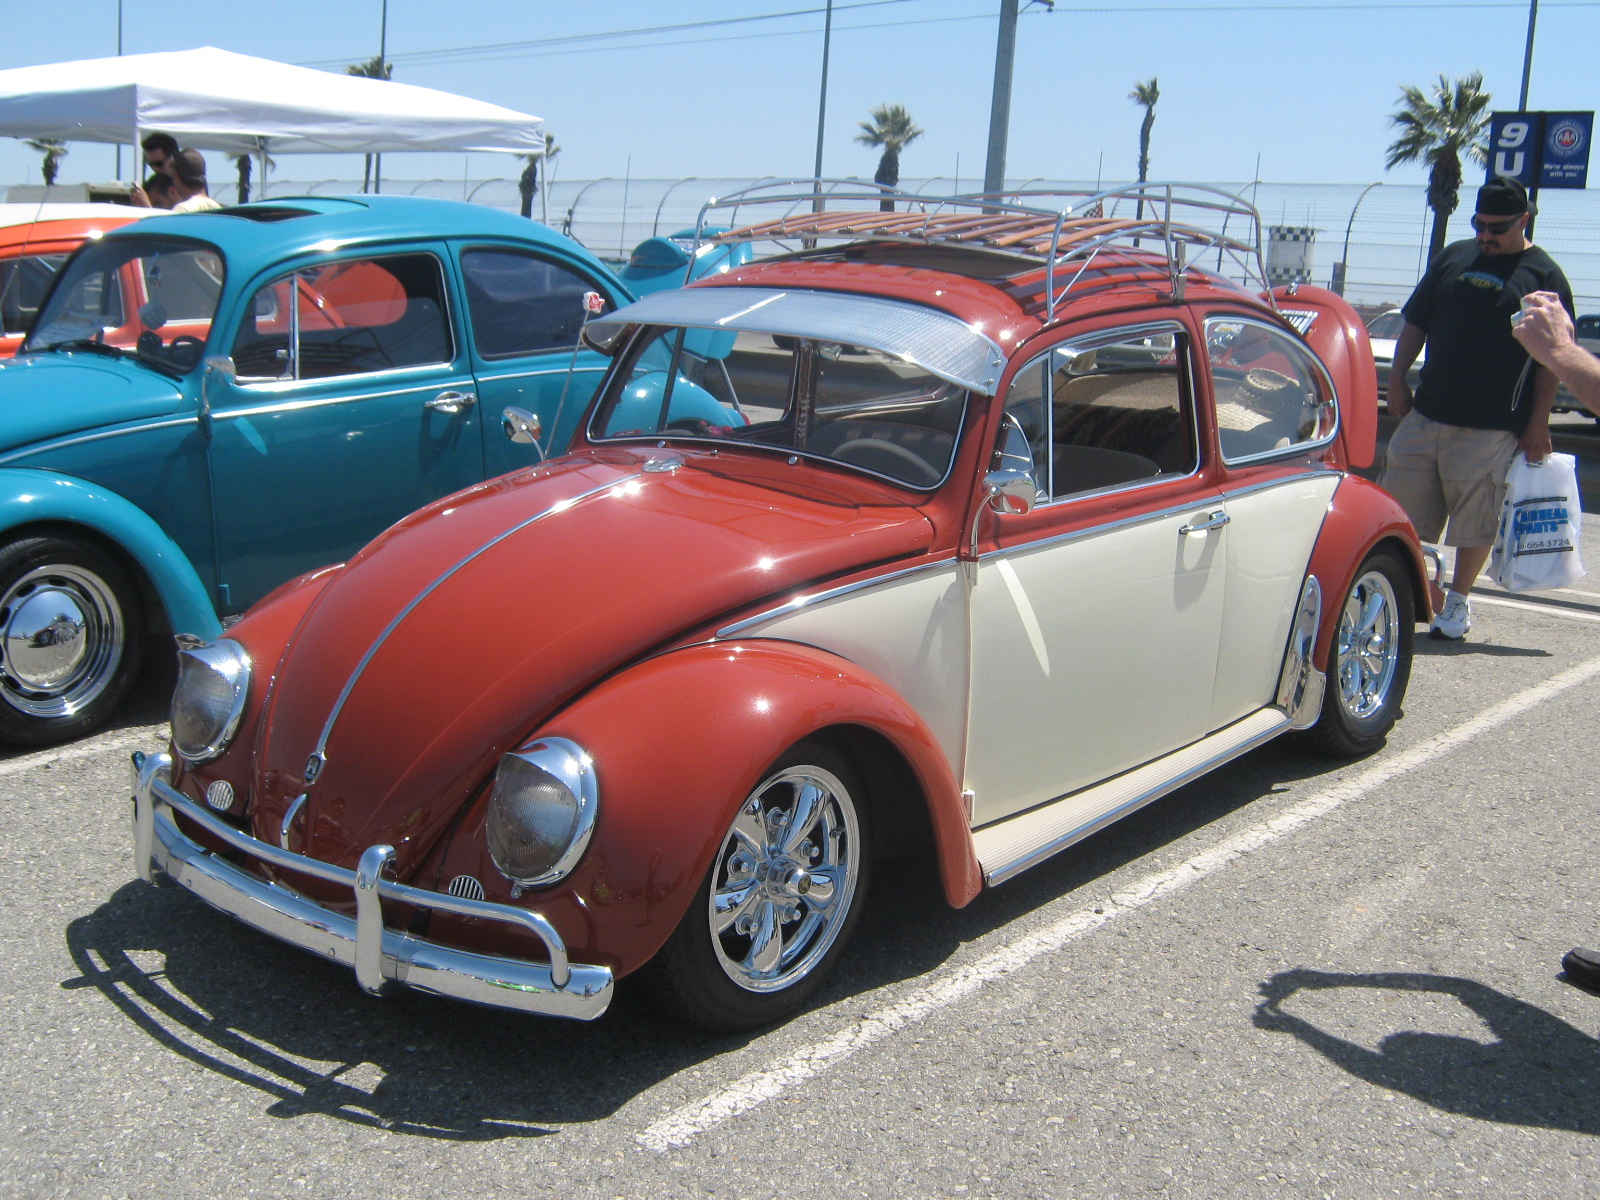 500 VW Bugs Take over Auto Club Dragway